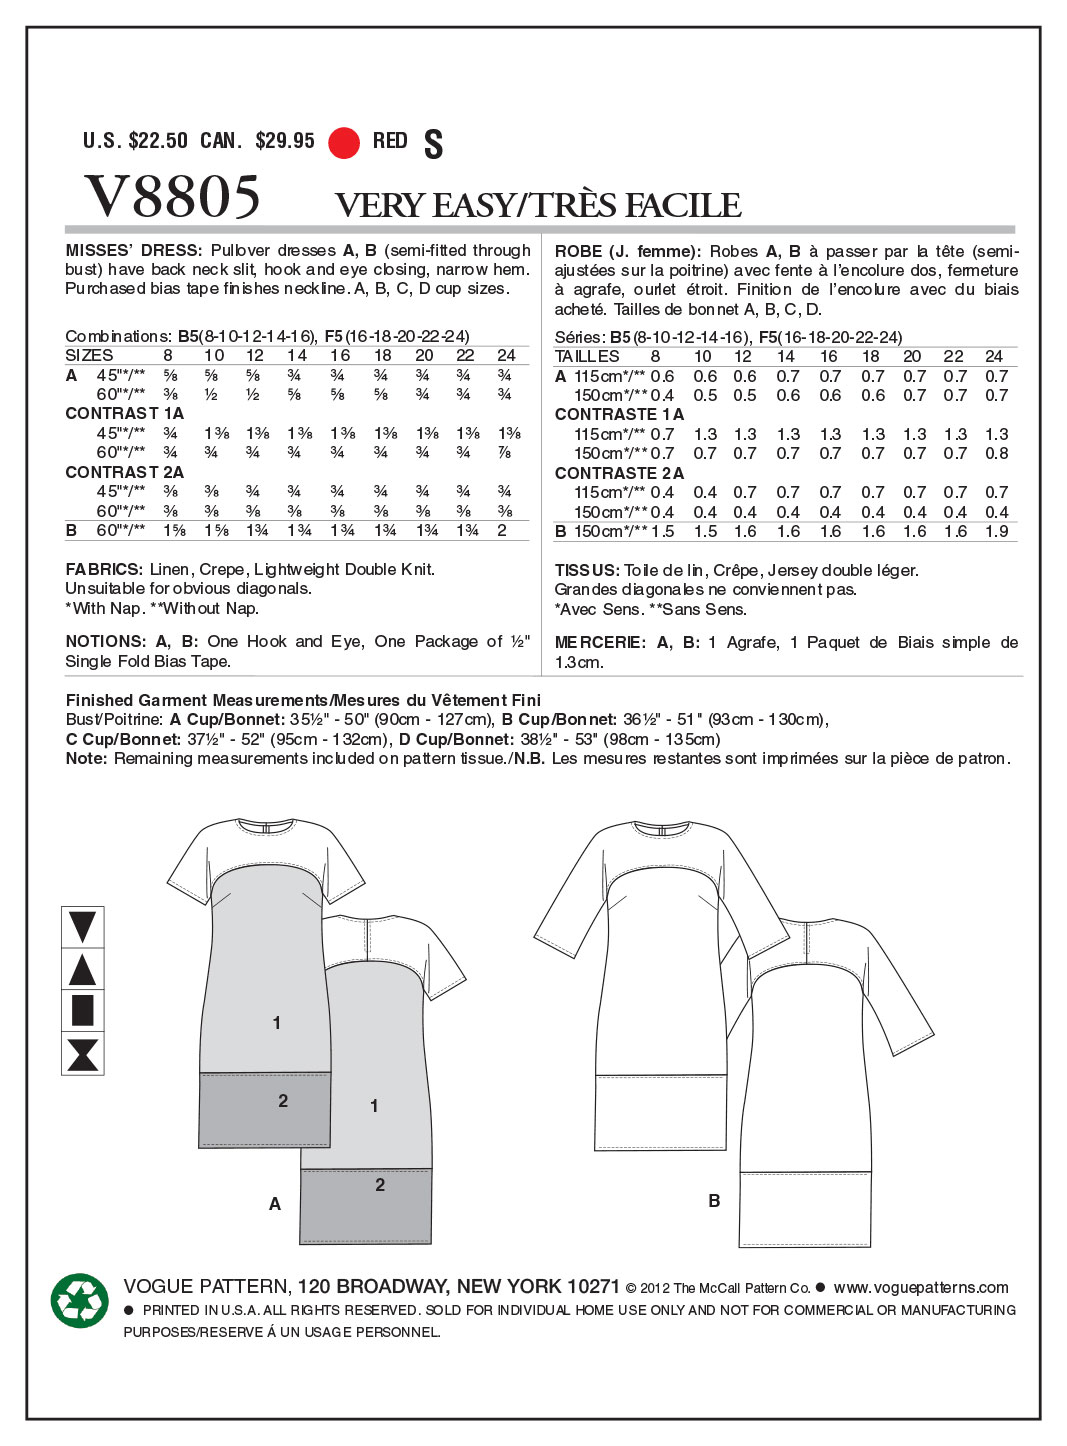 Vogue Patterns Misses Dress-V8805